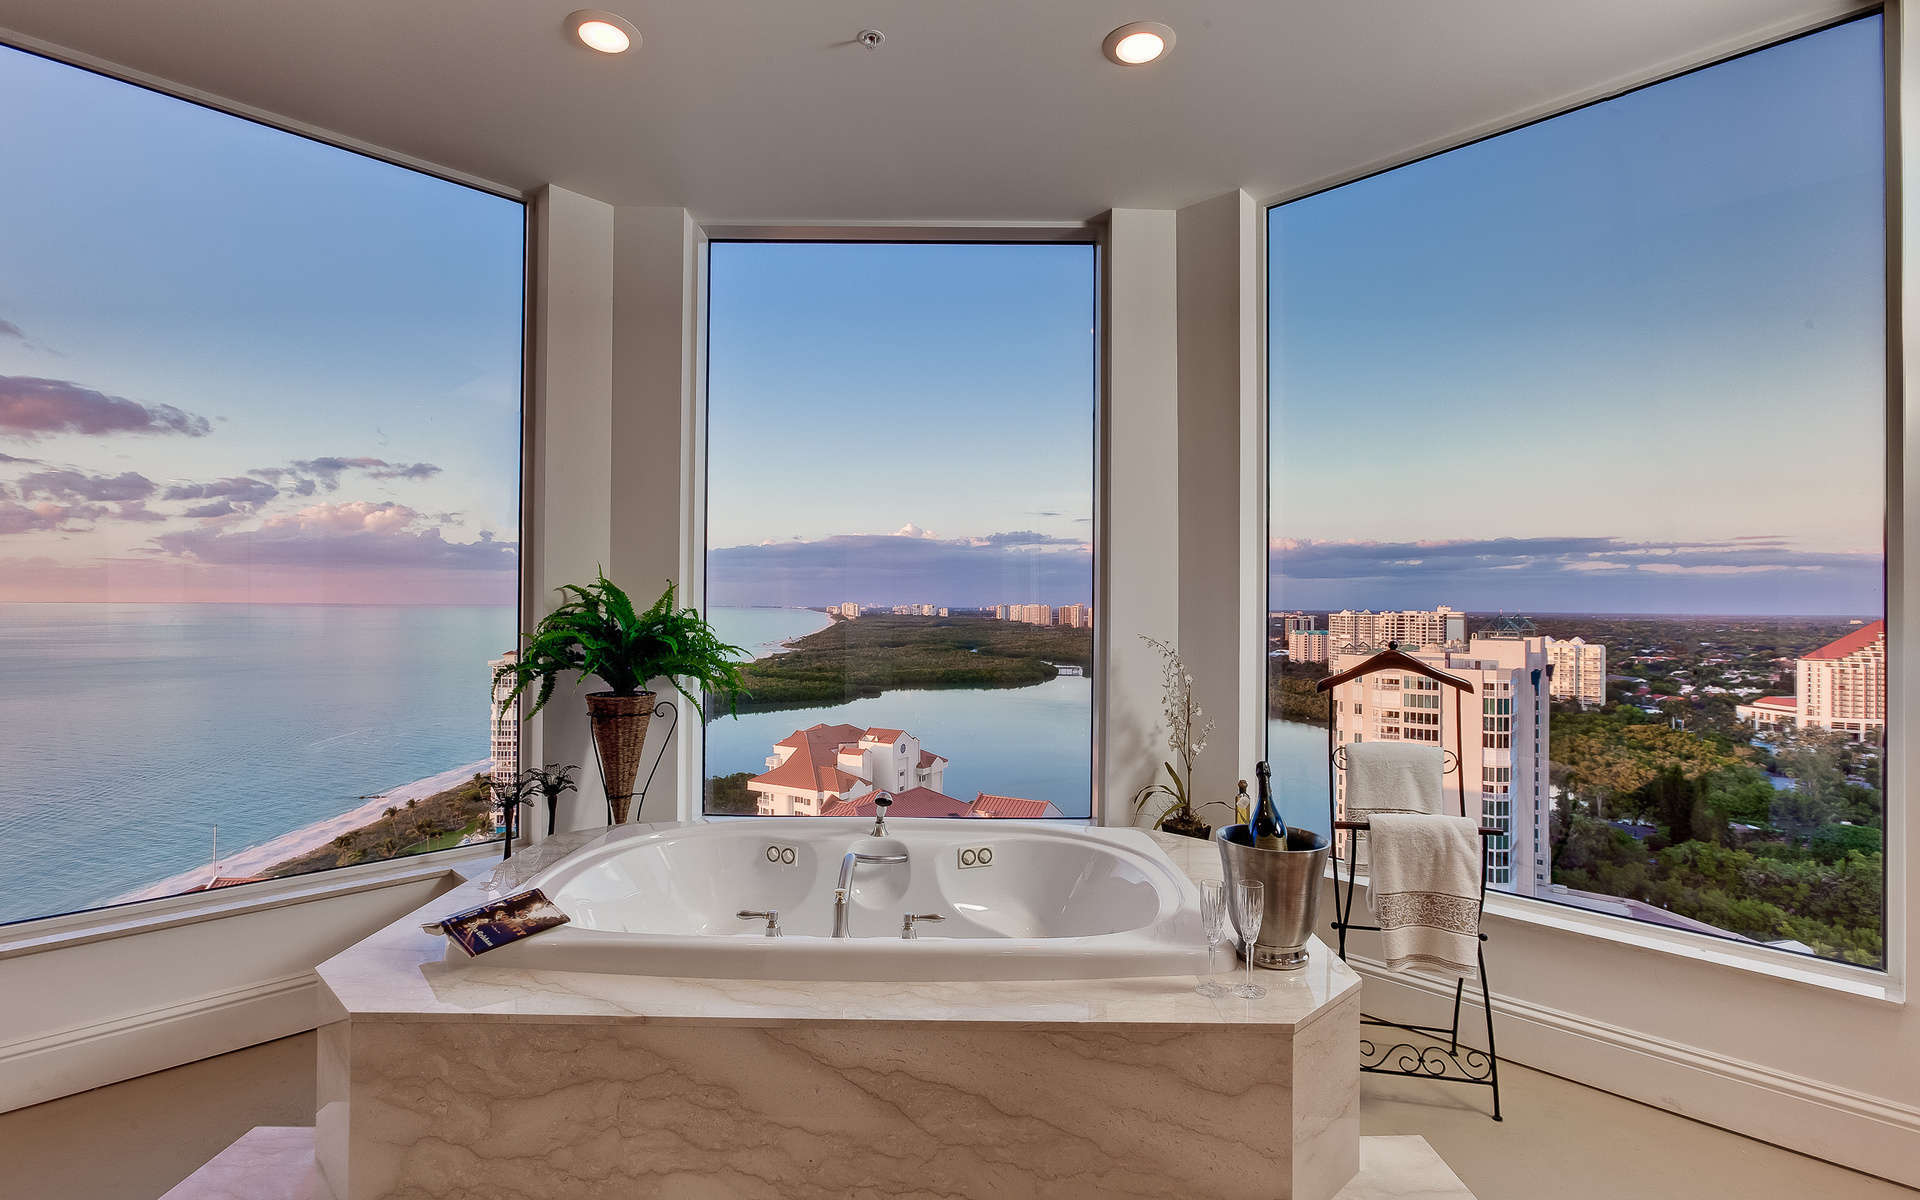 Luxury Bathrooms Luxury Bathrooms with Amazing Views naples fl bathroom with a long view over gulf of mexico 7